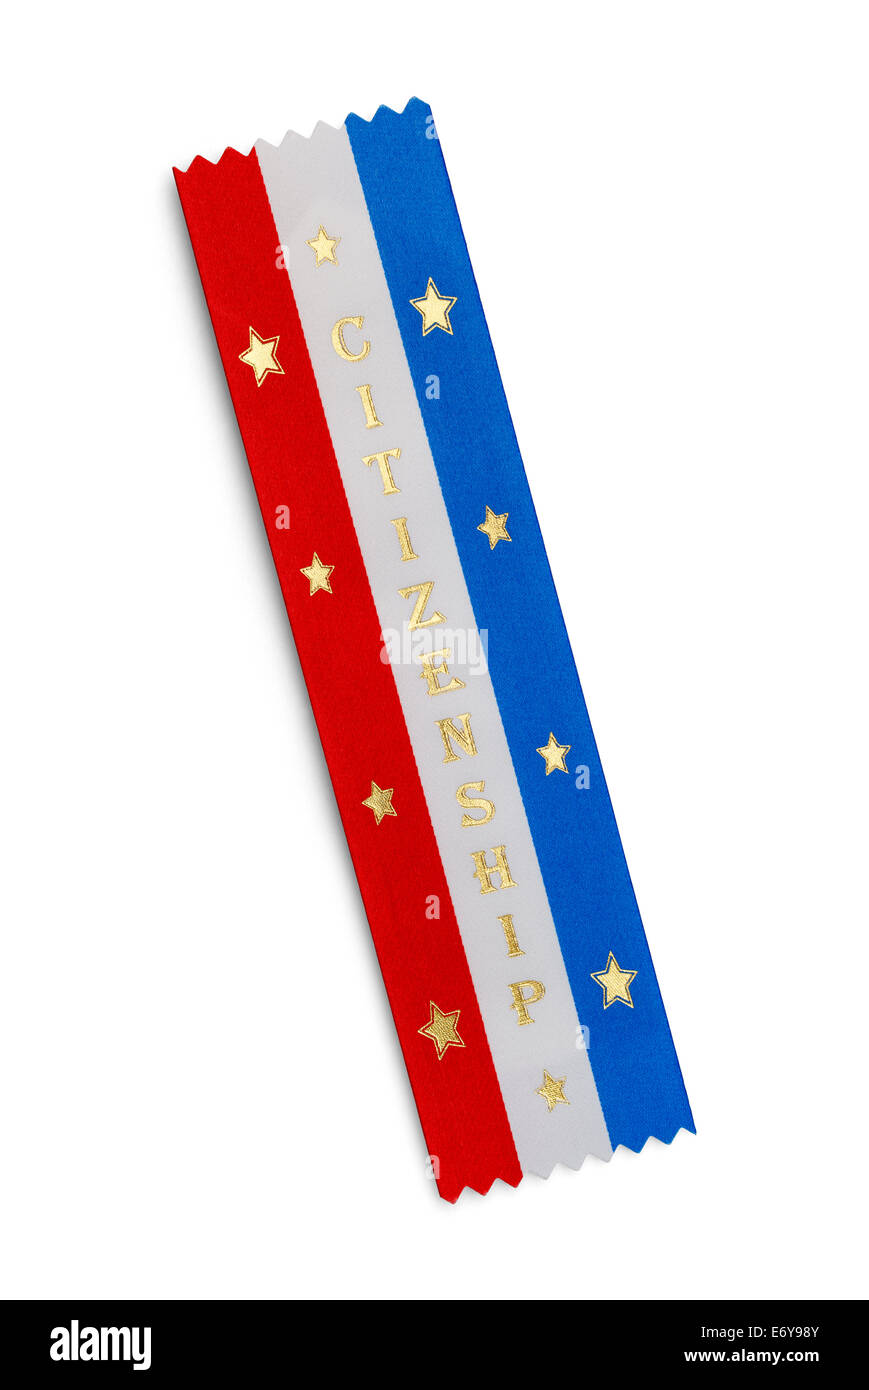 Red White and Blue Citizenship Ribbon With Stars Isolated on White Background. - Stock Image